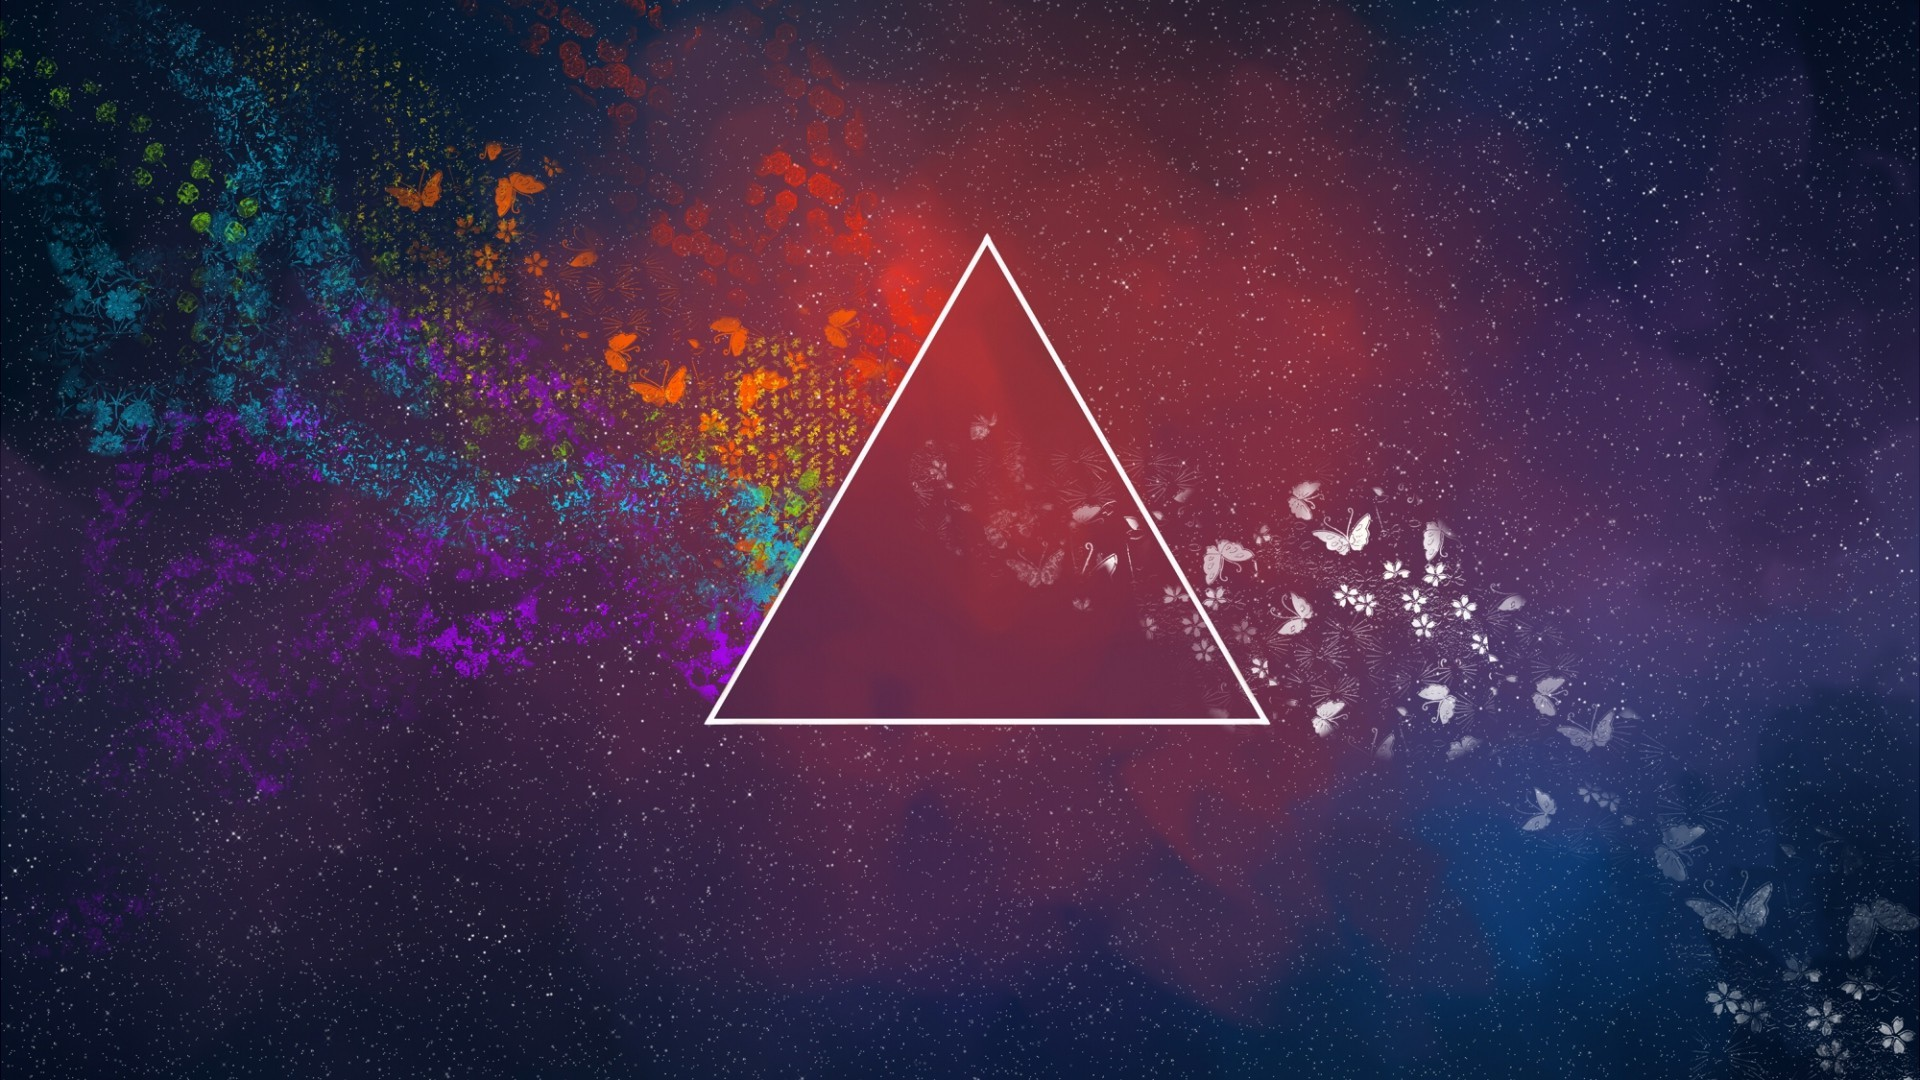 abstract, Triangle, Flowers, Pink Floyd, The Dark Side Of The Moon  Wallpapers HD / Desktop and Mobile Backgrounds